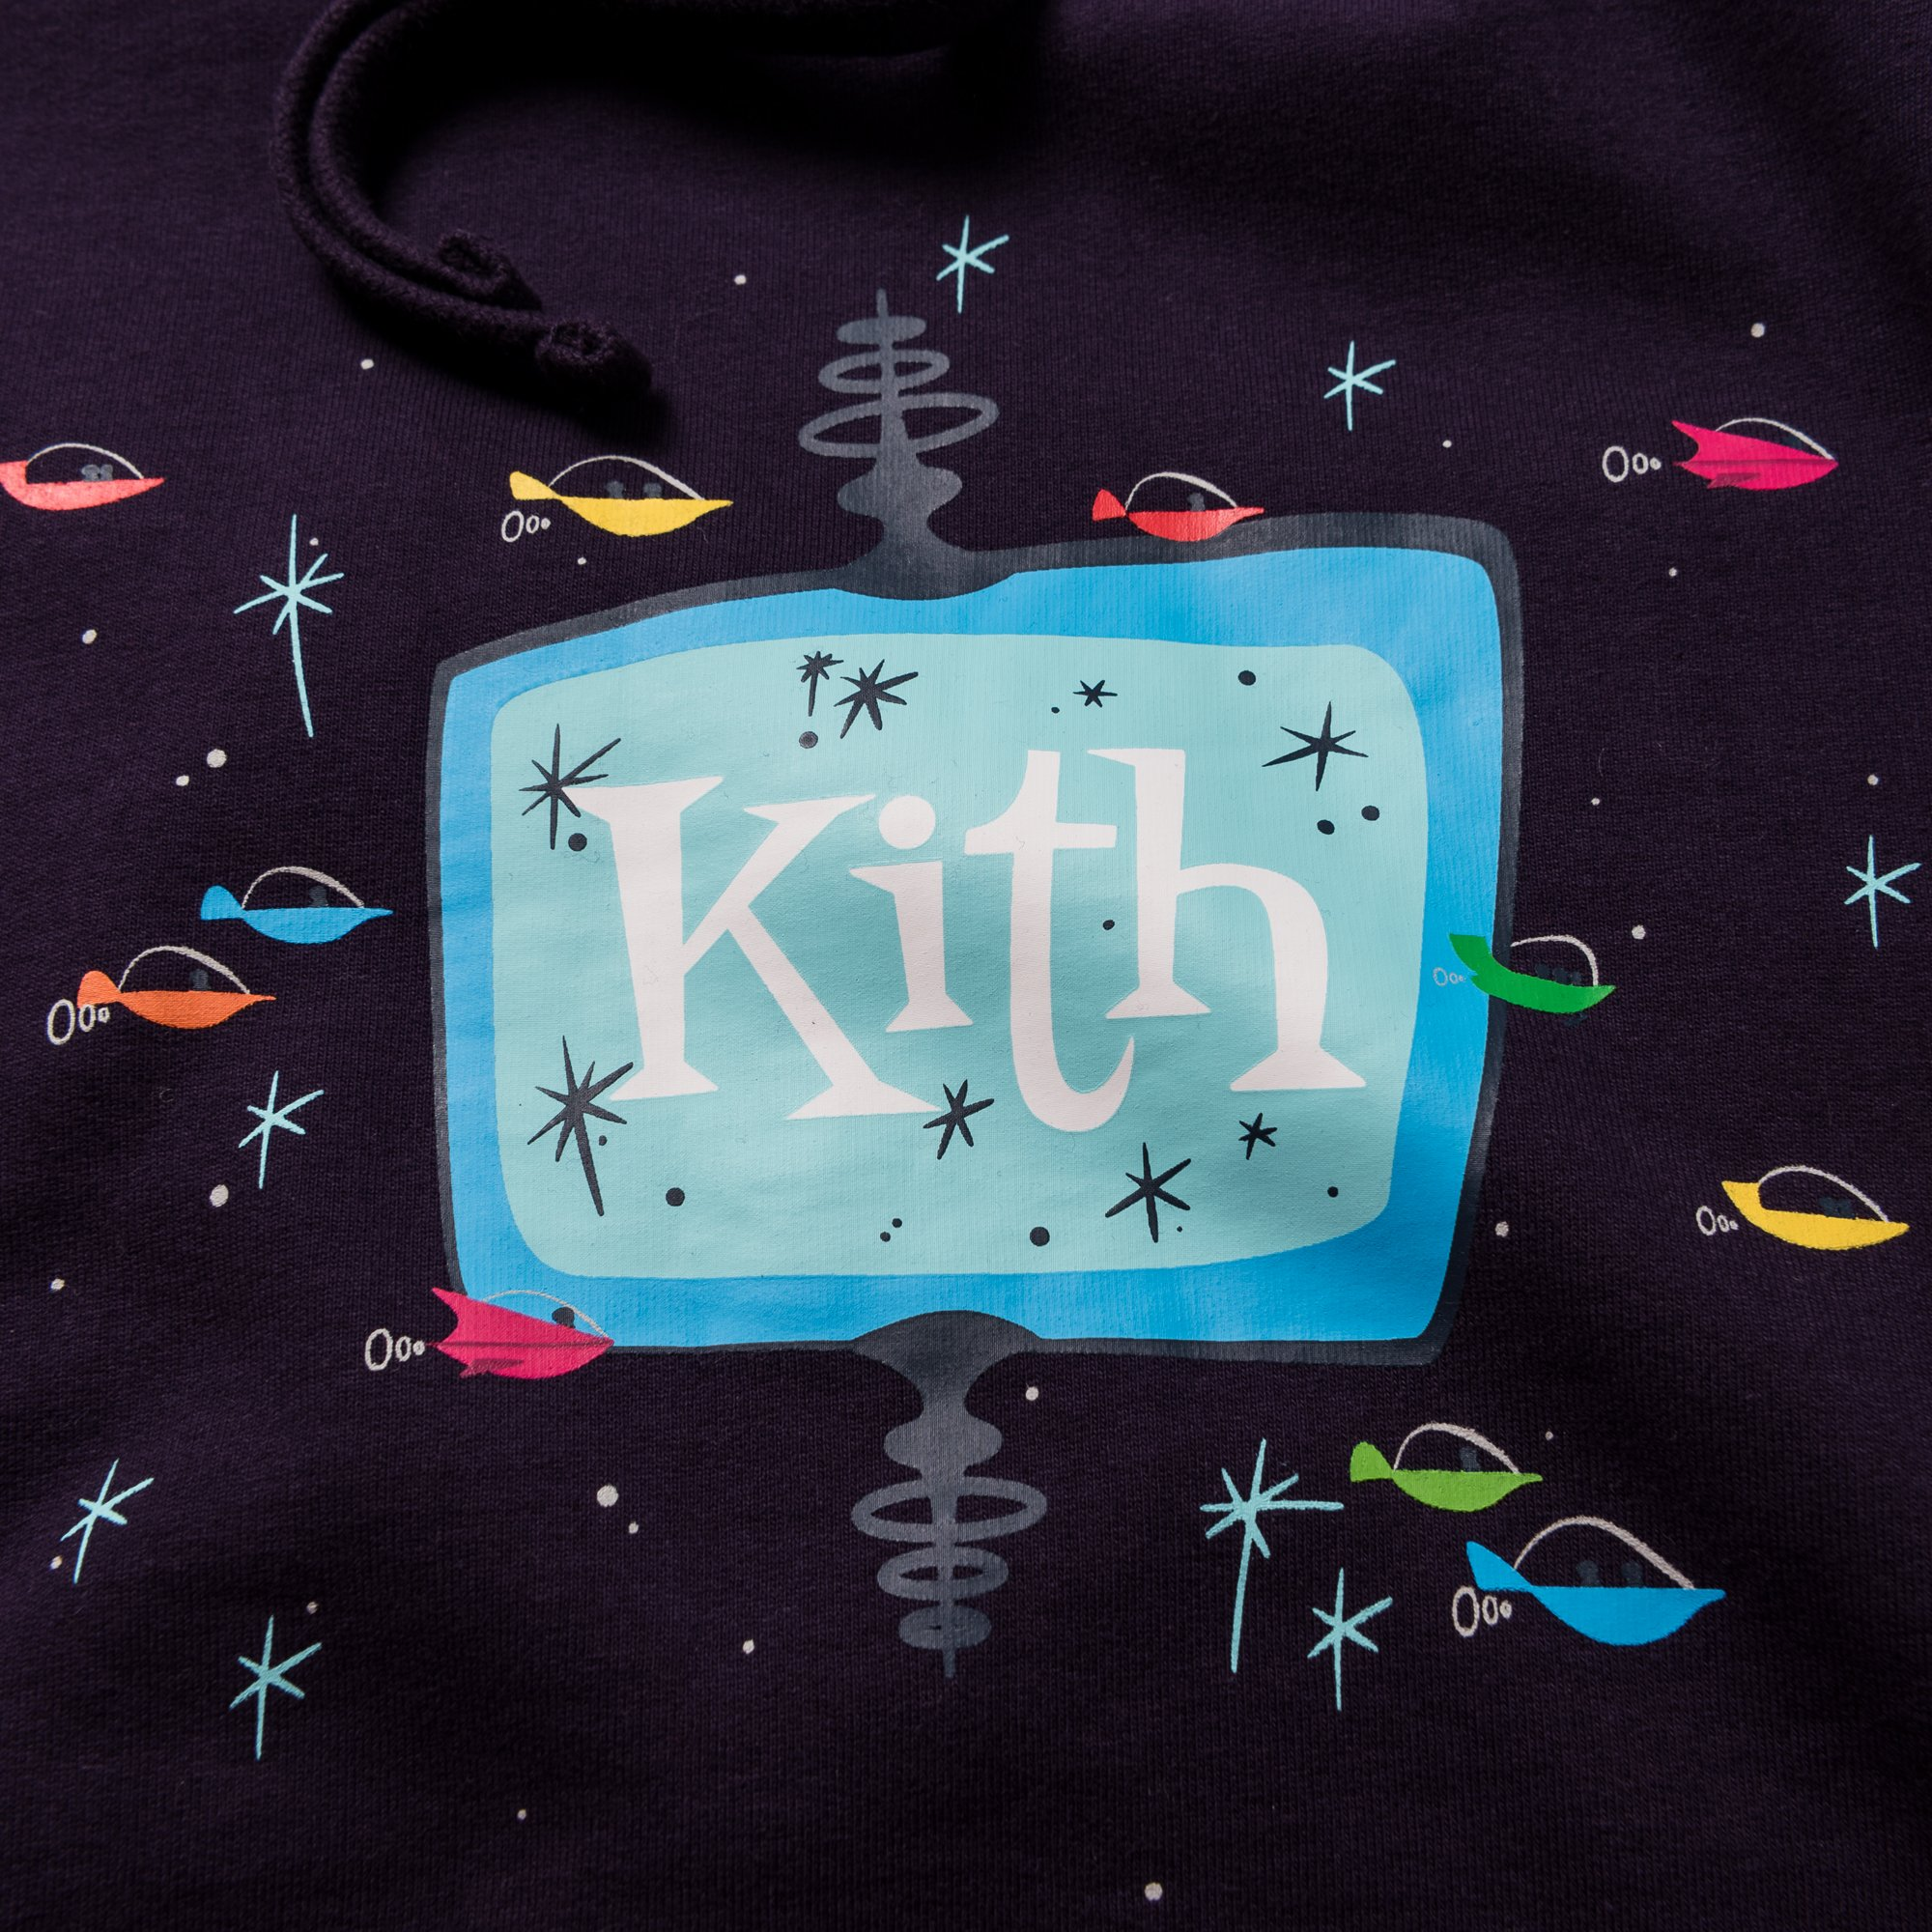 Kith x The Jetsons